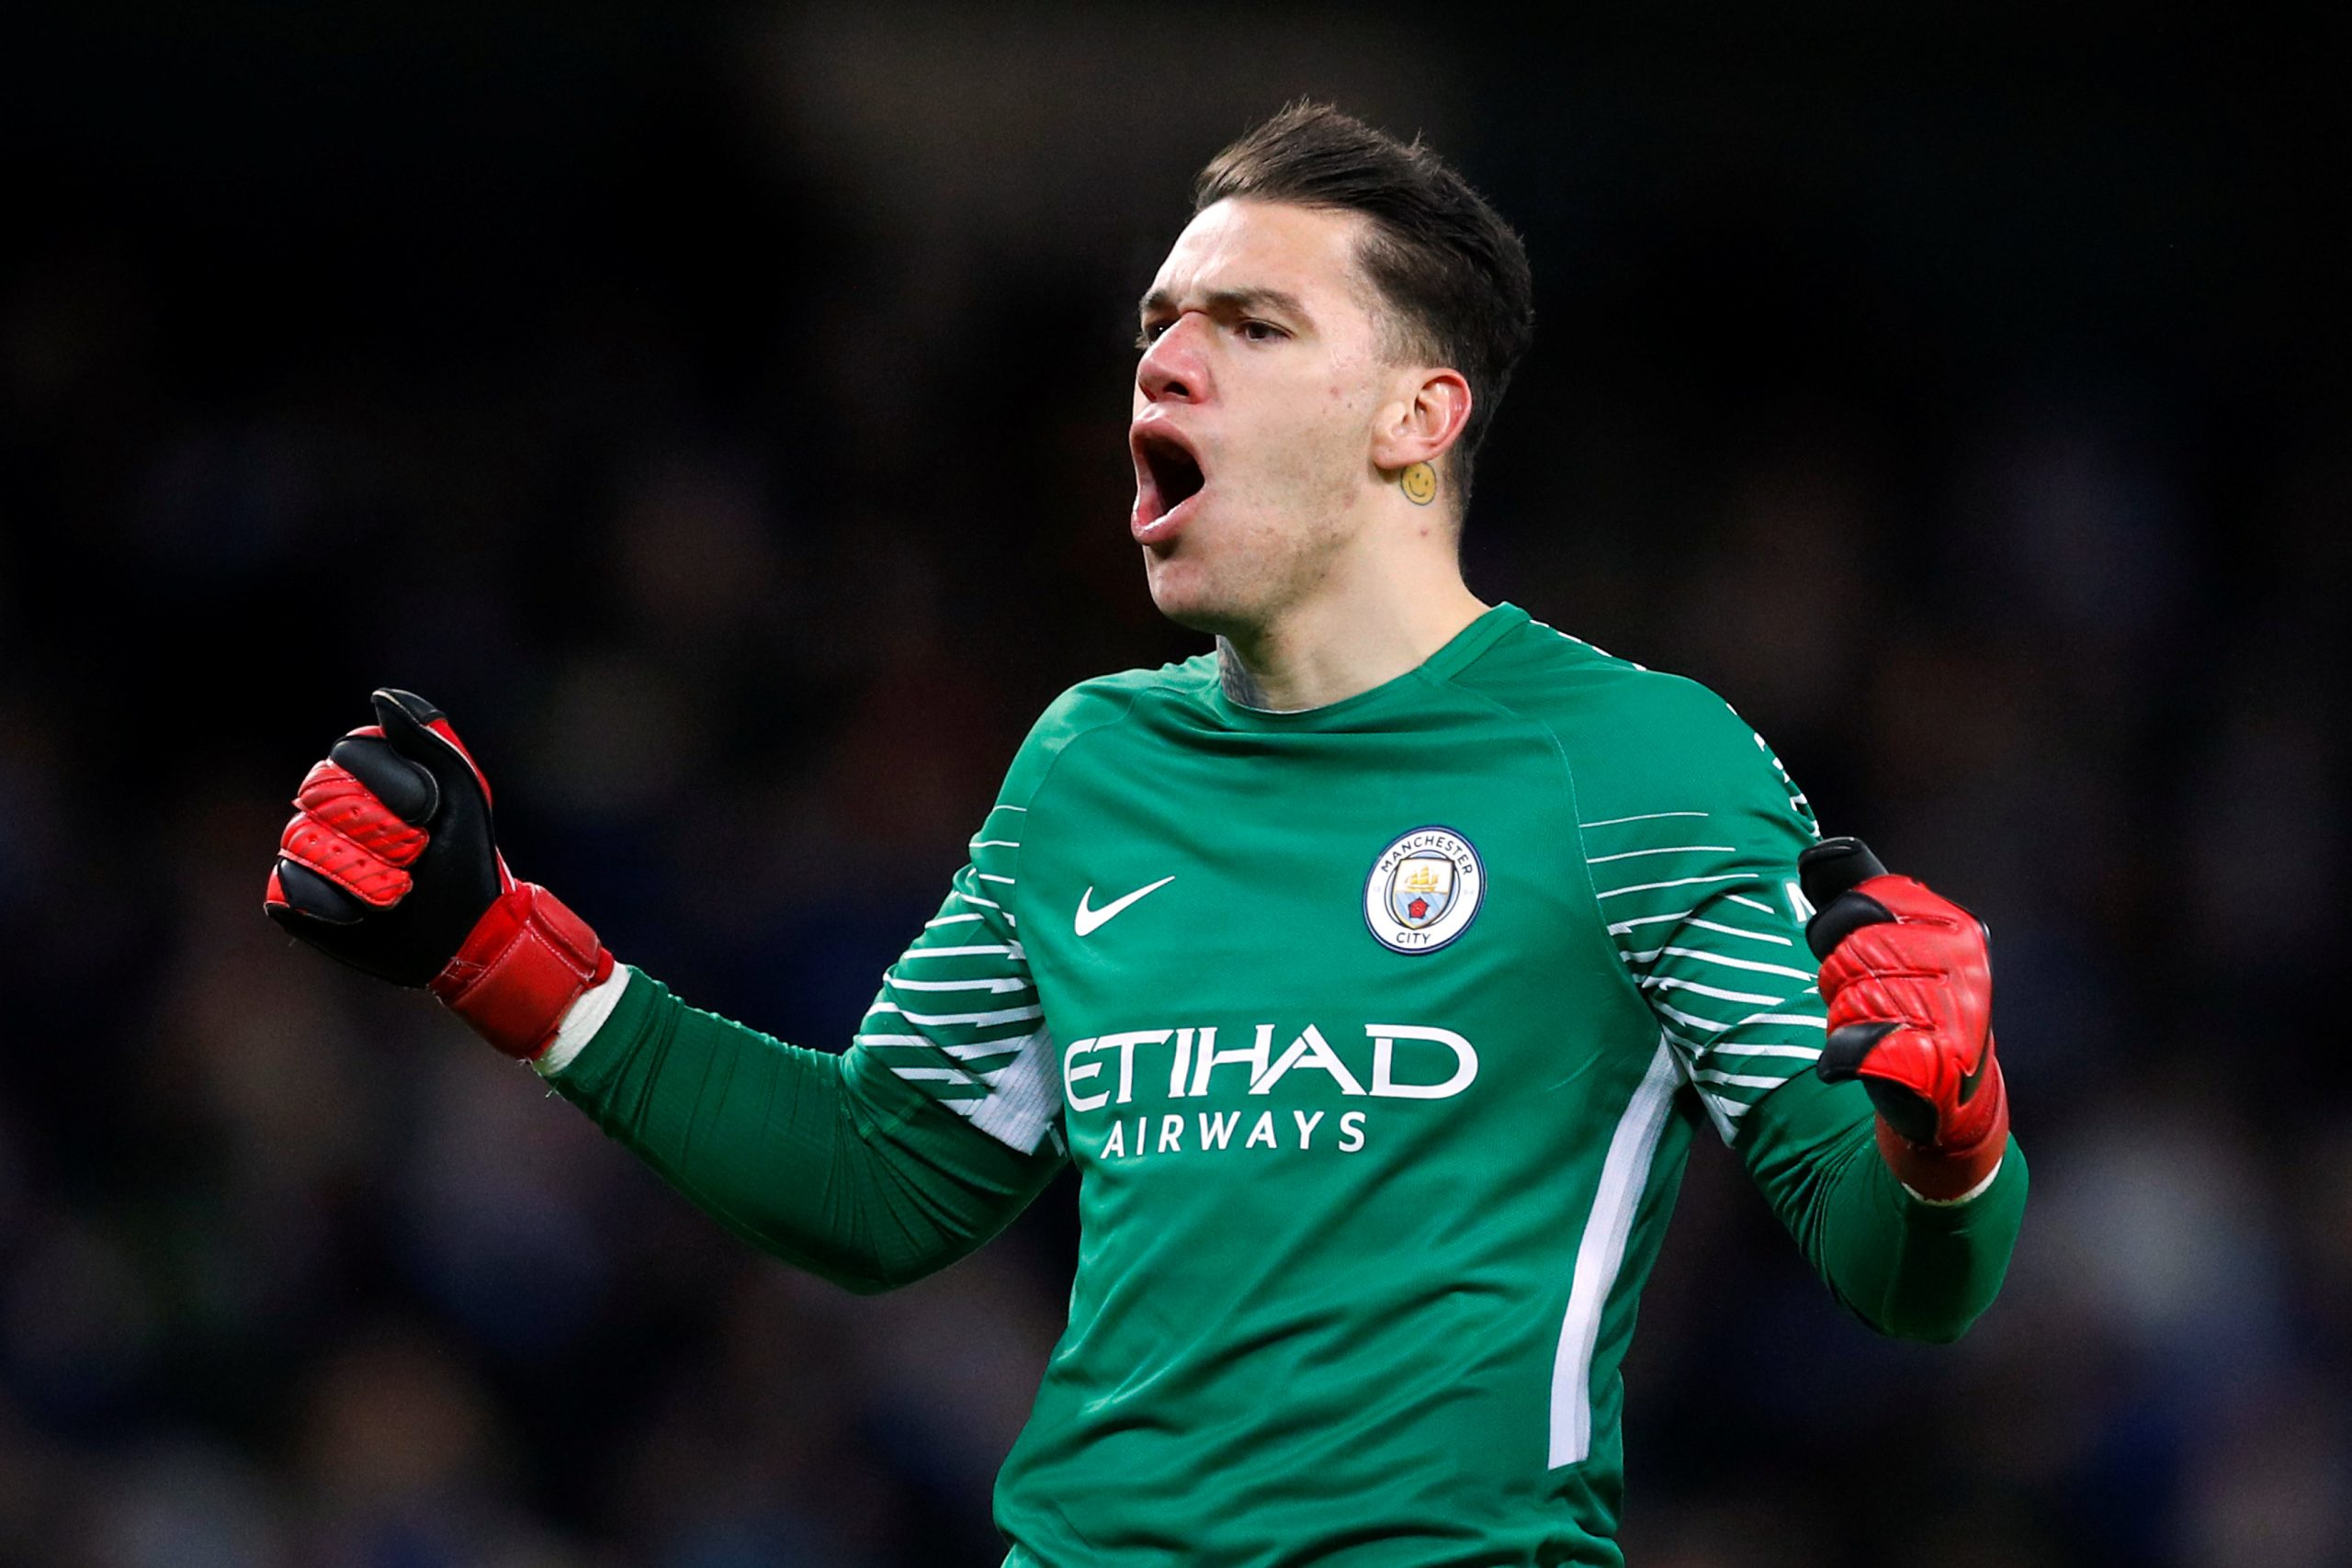 Top Five tallest Manchester City players - Ederson